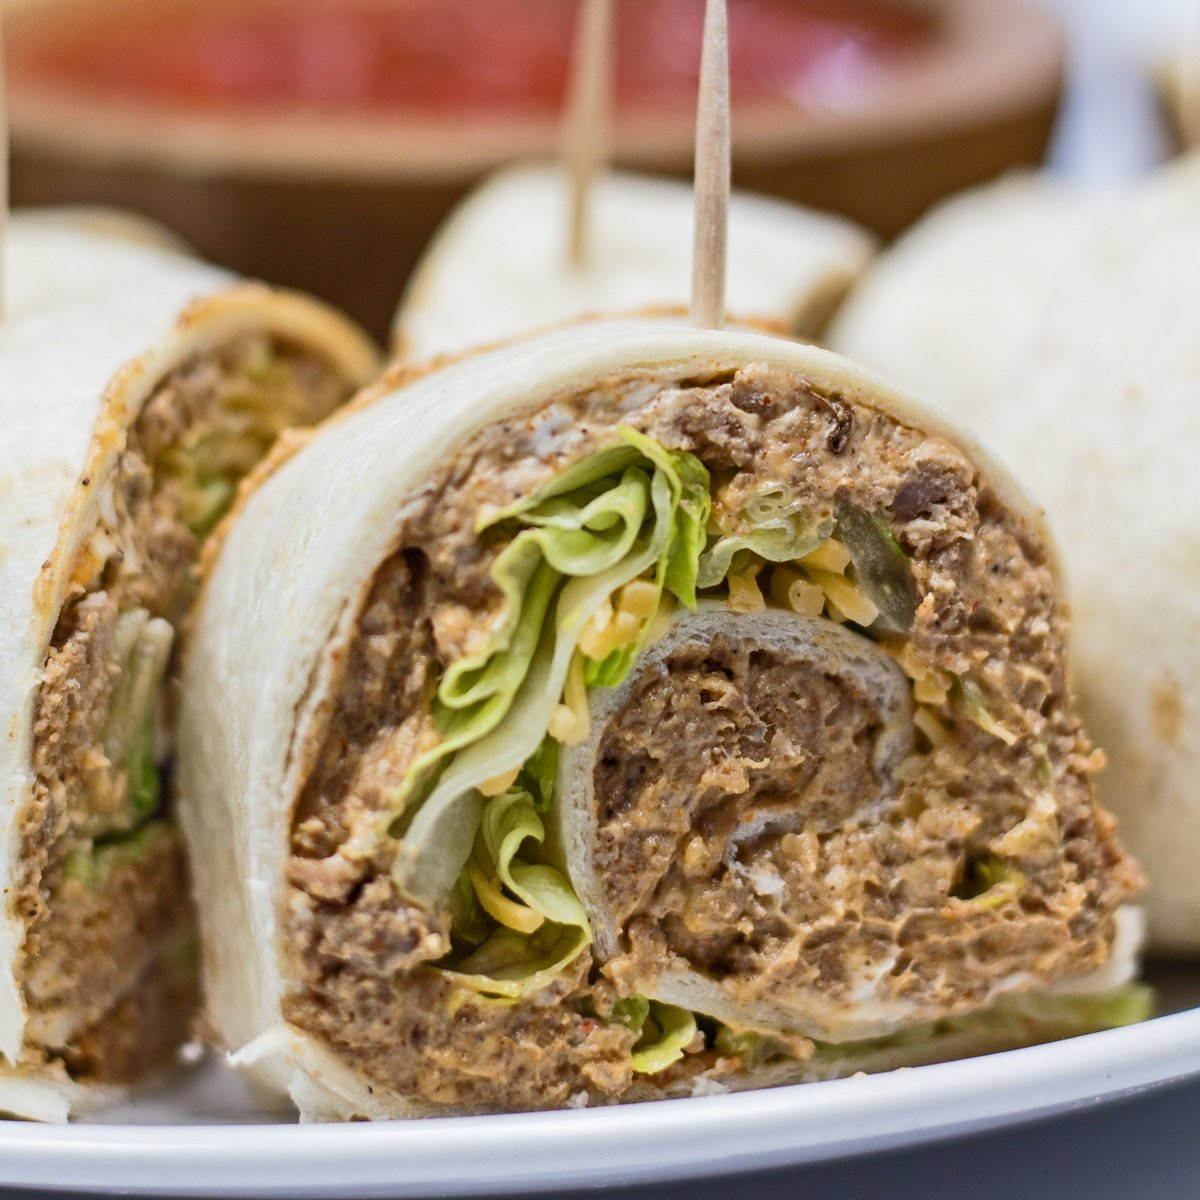 Taco pinwheel sandwiches cut and served on white plate.